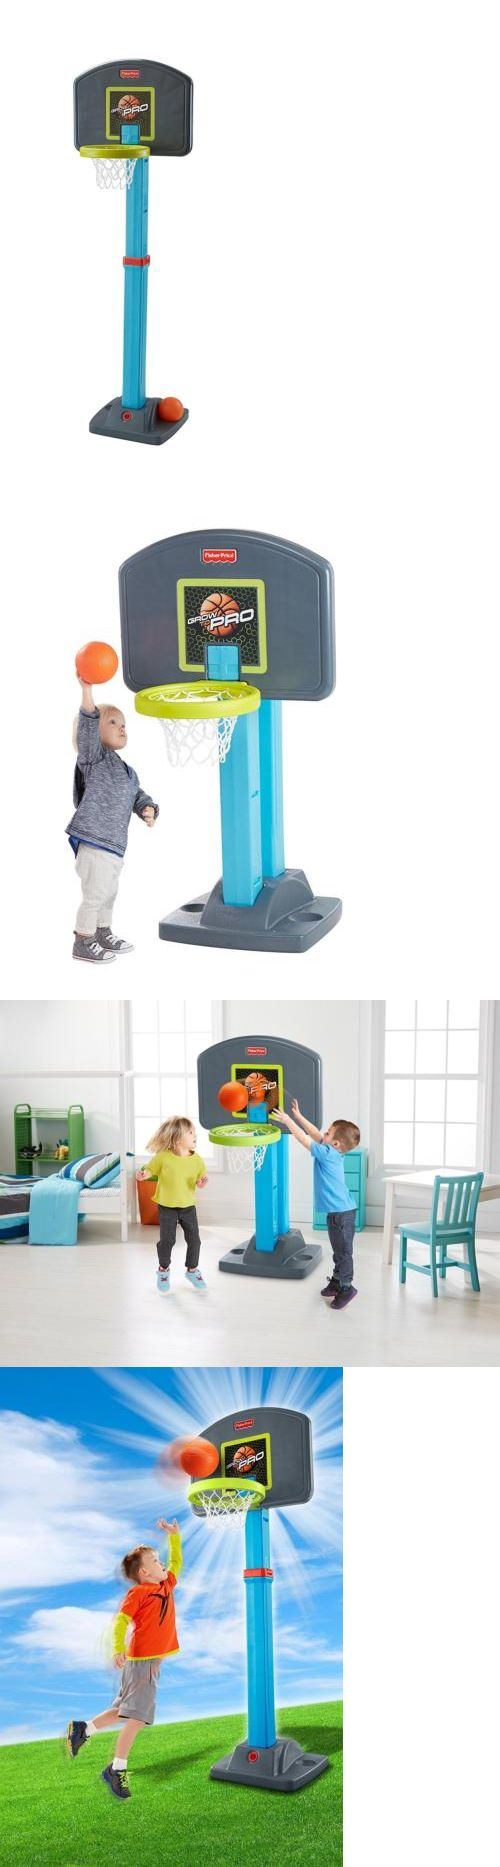 Other Outdoor Toys Structures 11742: Fisher Price Grow-To-Pro Basketball Set, 4 Height Positions Kids Basketball Hoop -> BUY IT NOW ONLY: $38.66 on eBay!